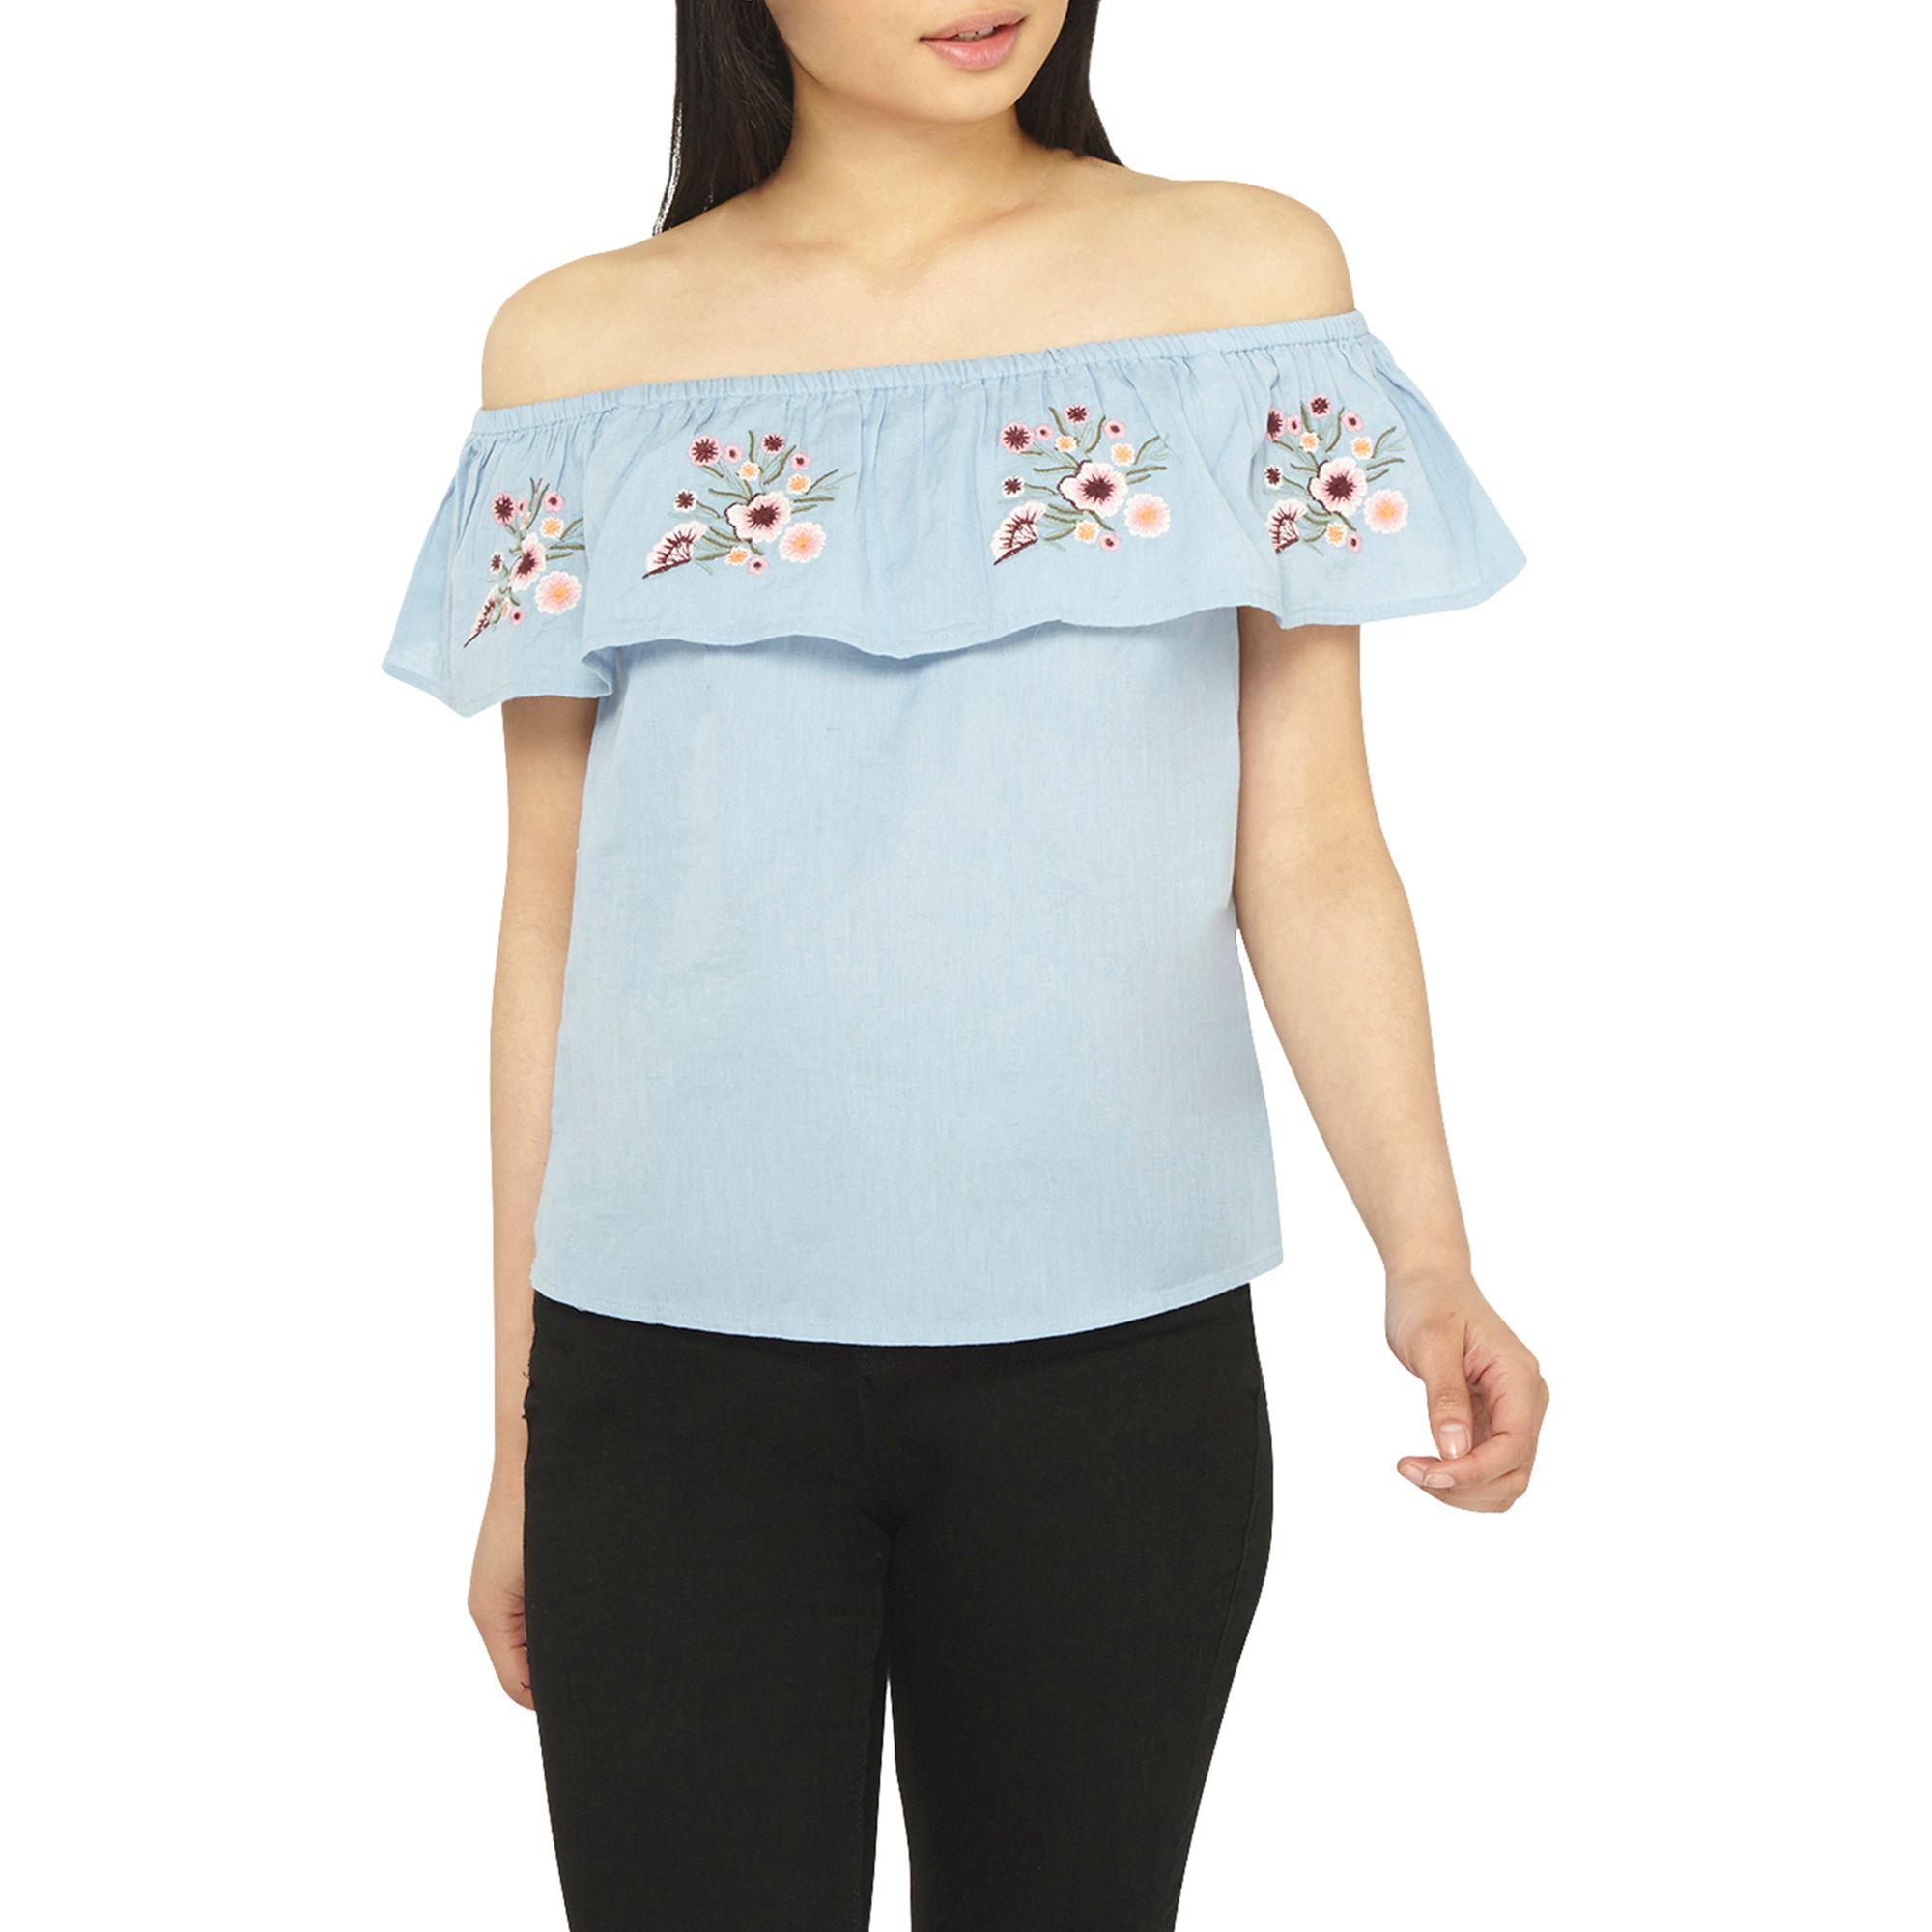 b09771f6f8d2e Lyst - Dorothy Perkins Petite Chambray Embroidered Bardot Top in Blue